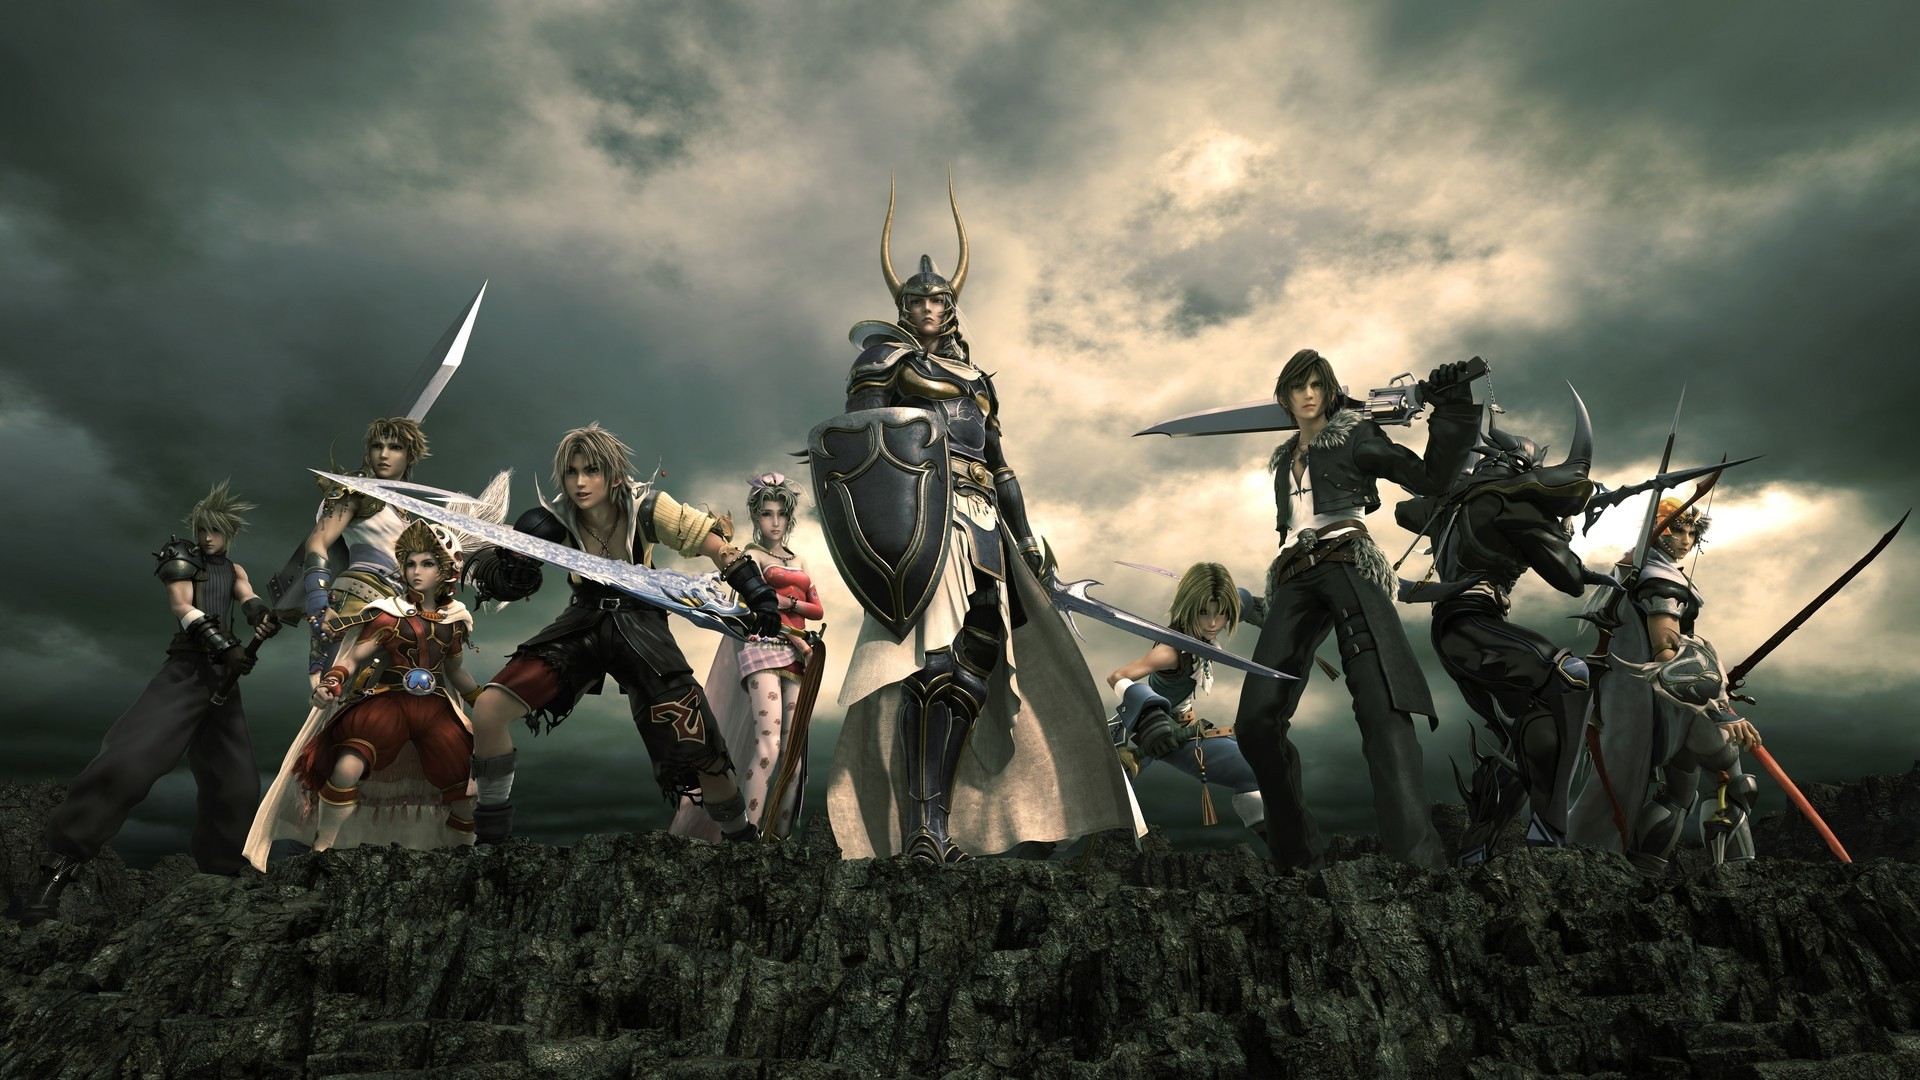 rate 0 tweet 1920x1080 games final fantasy dissidia final fantasy 1920x1080